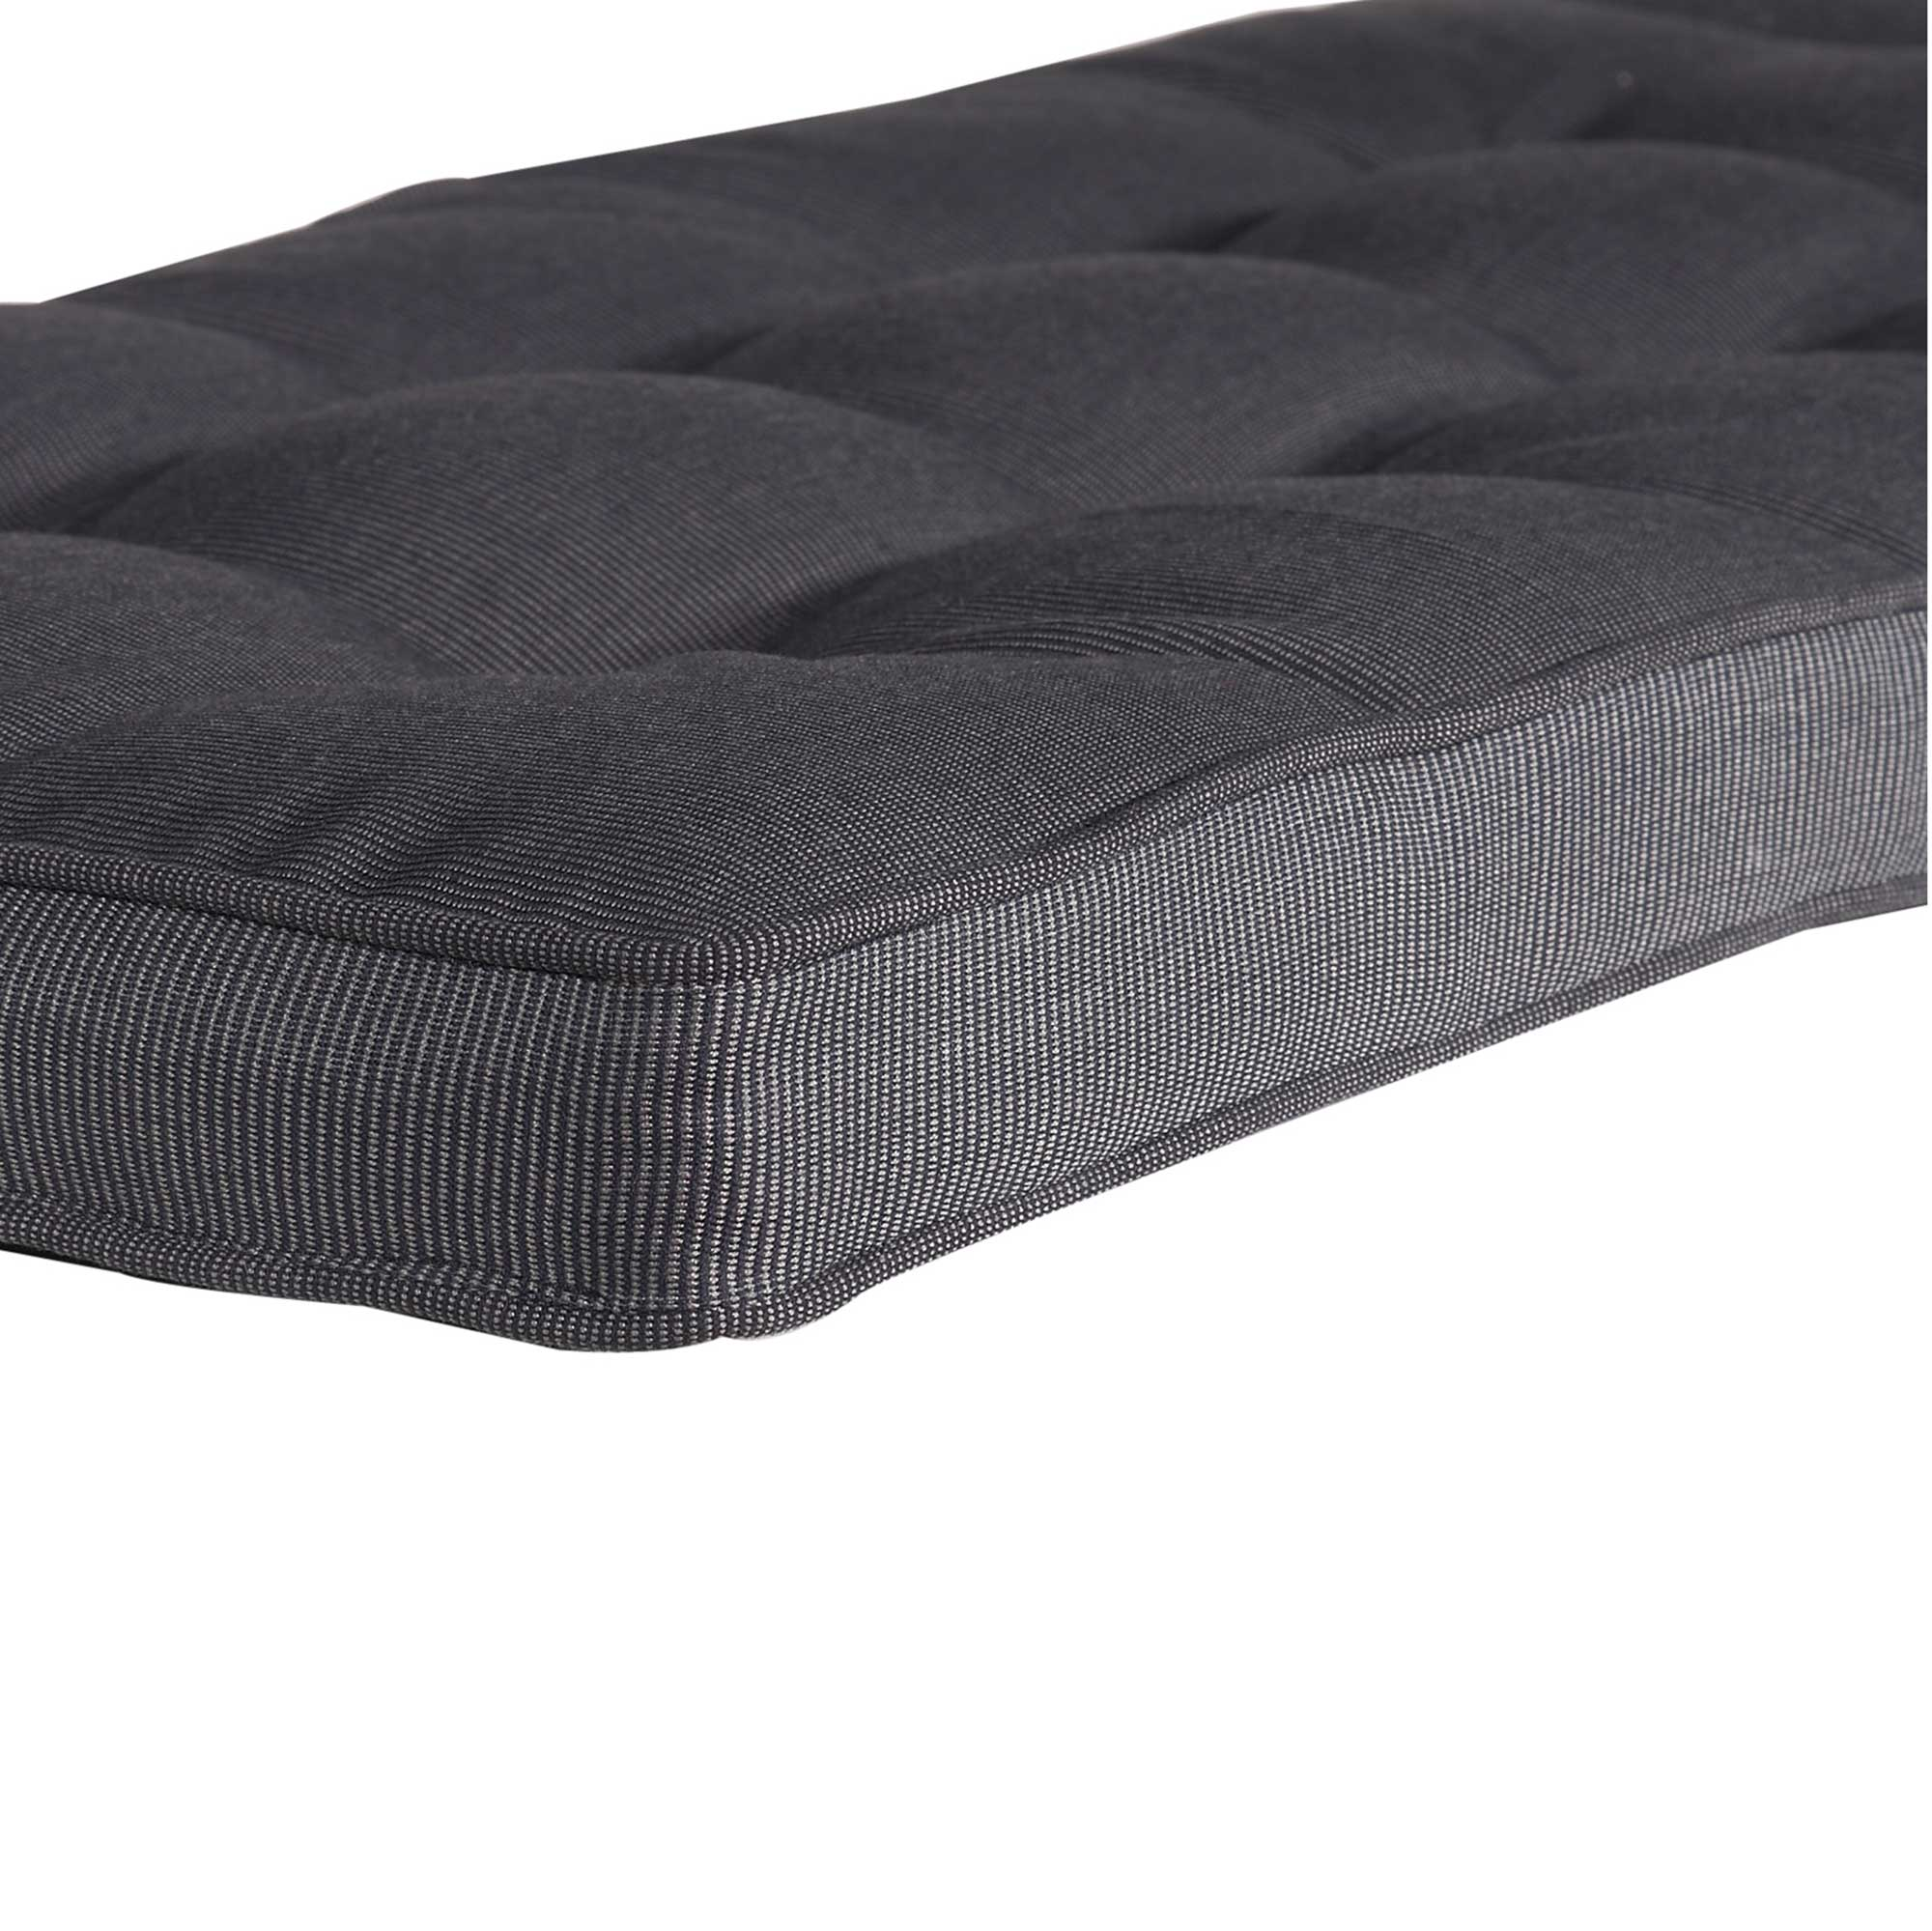 Swell Bossima Cabana Outdoor Bench Cushion Online 145Cm Black Interior Design Ideas Truasarkarijobsexamcom